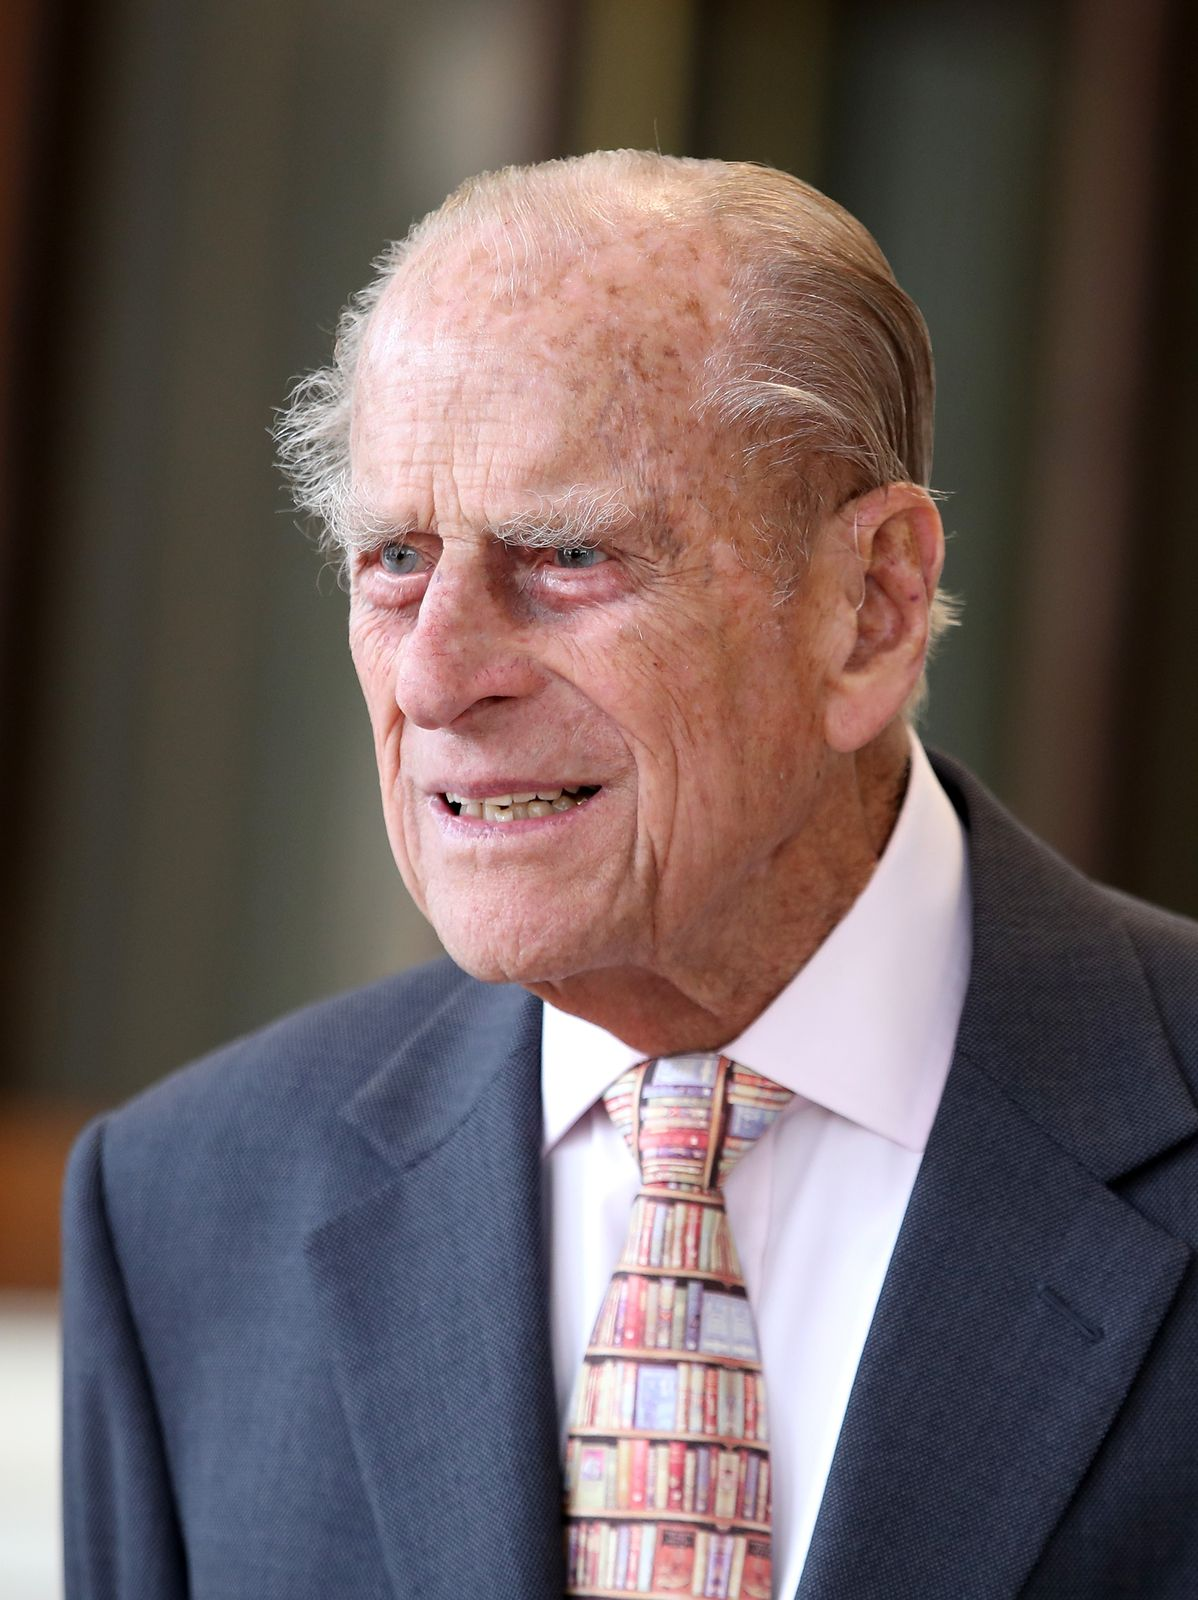 Prince Philip at a state visit by the King and Queen of Spain on July 14, 2017, in London, England | Photo: Chris Jackson/Getty Images